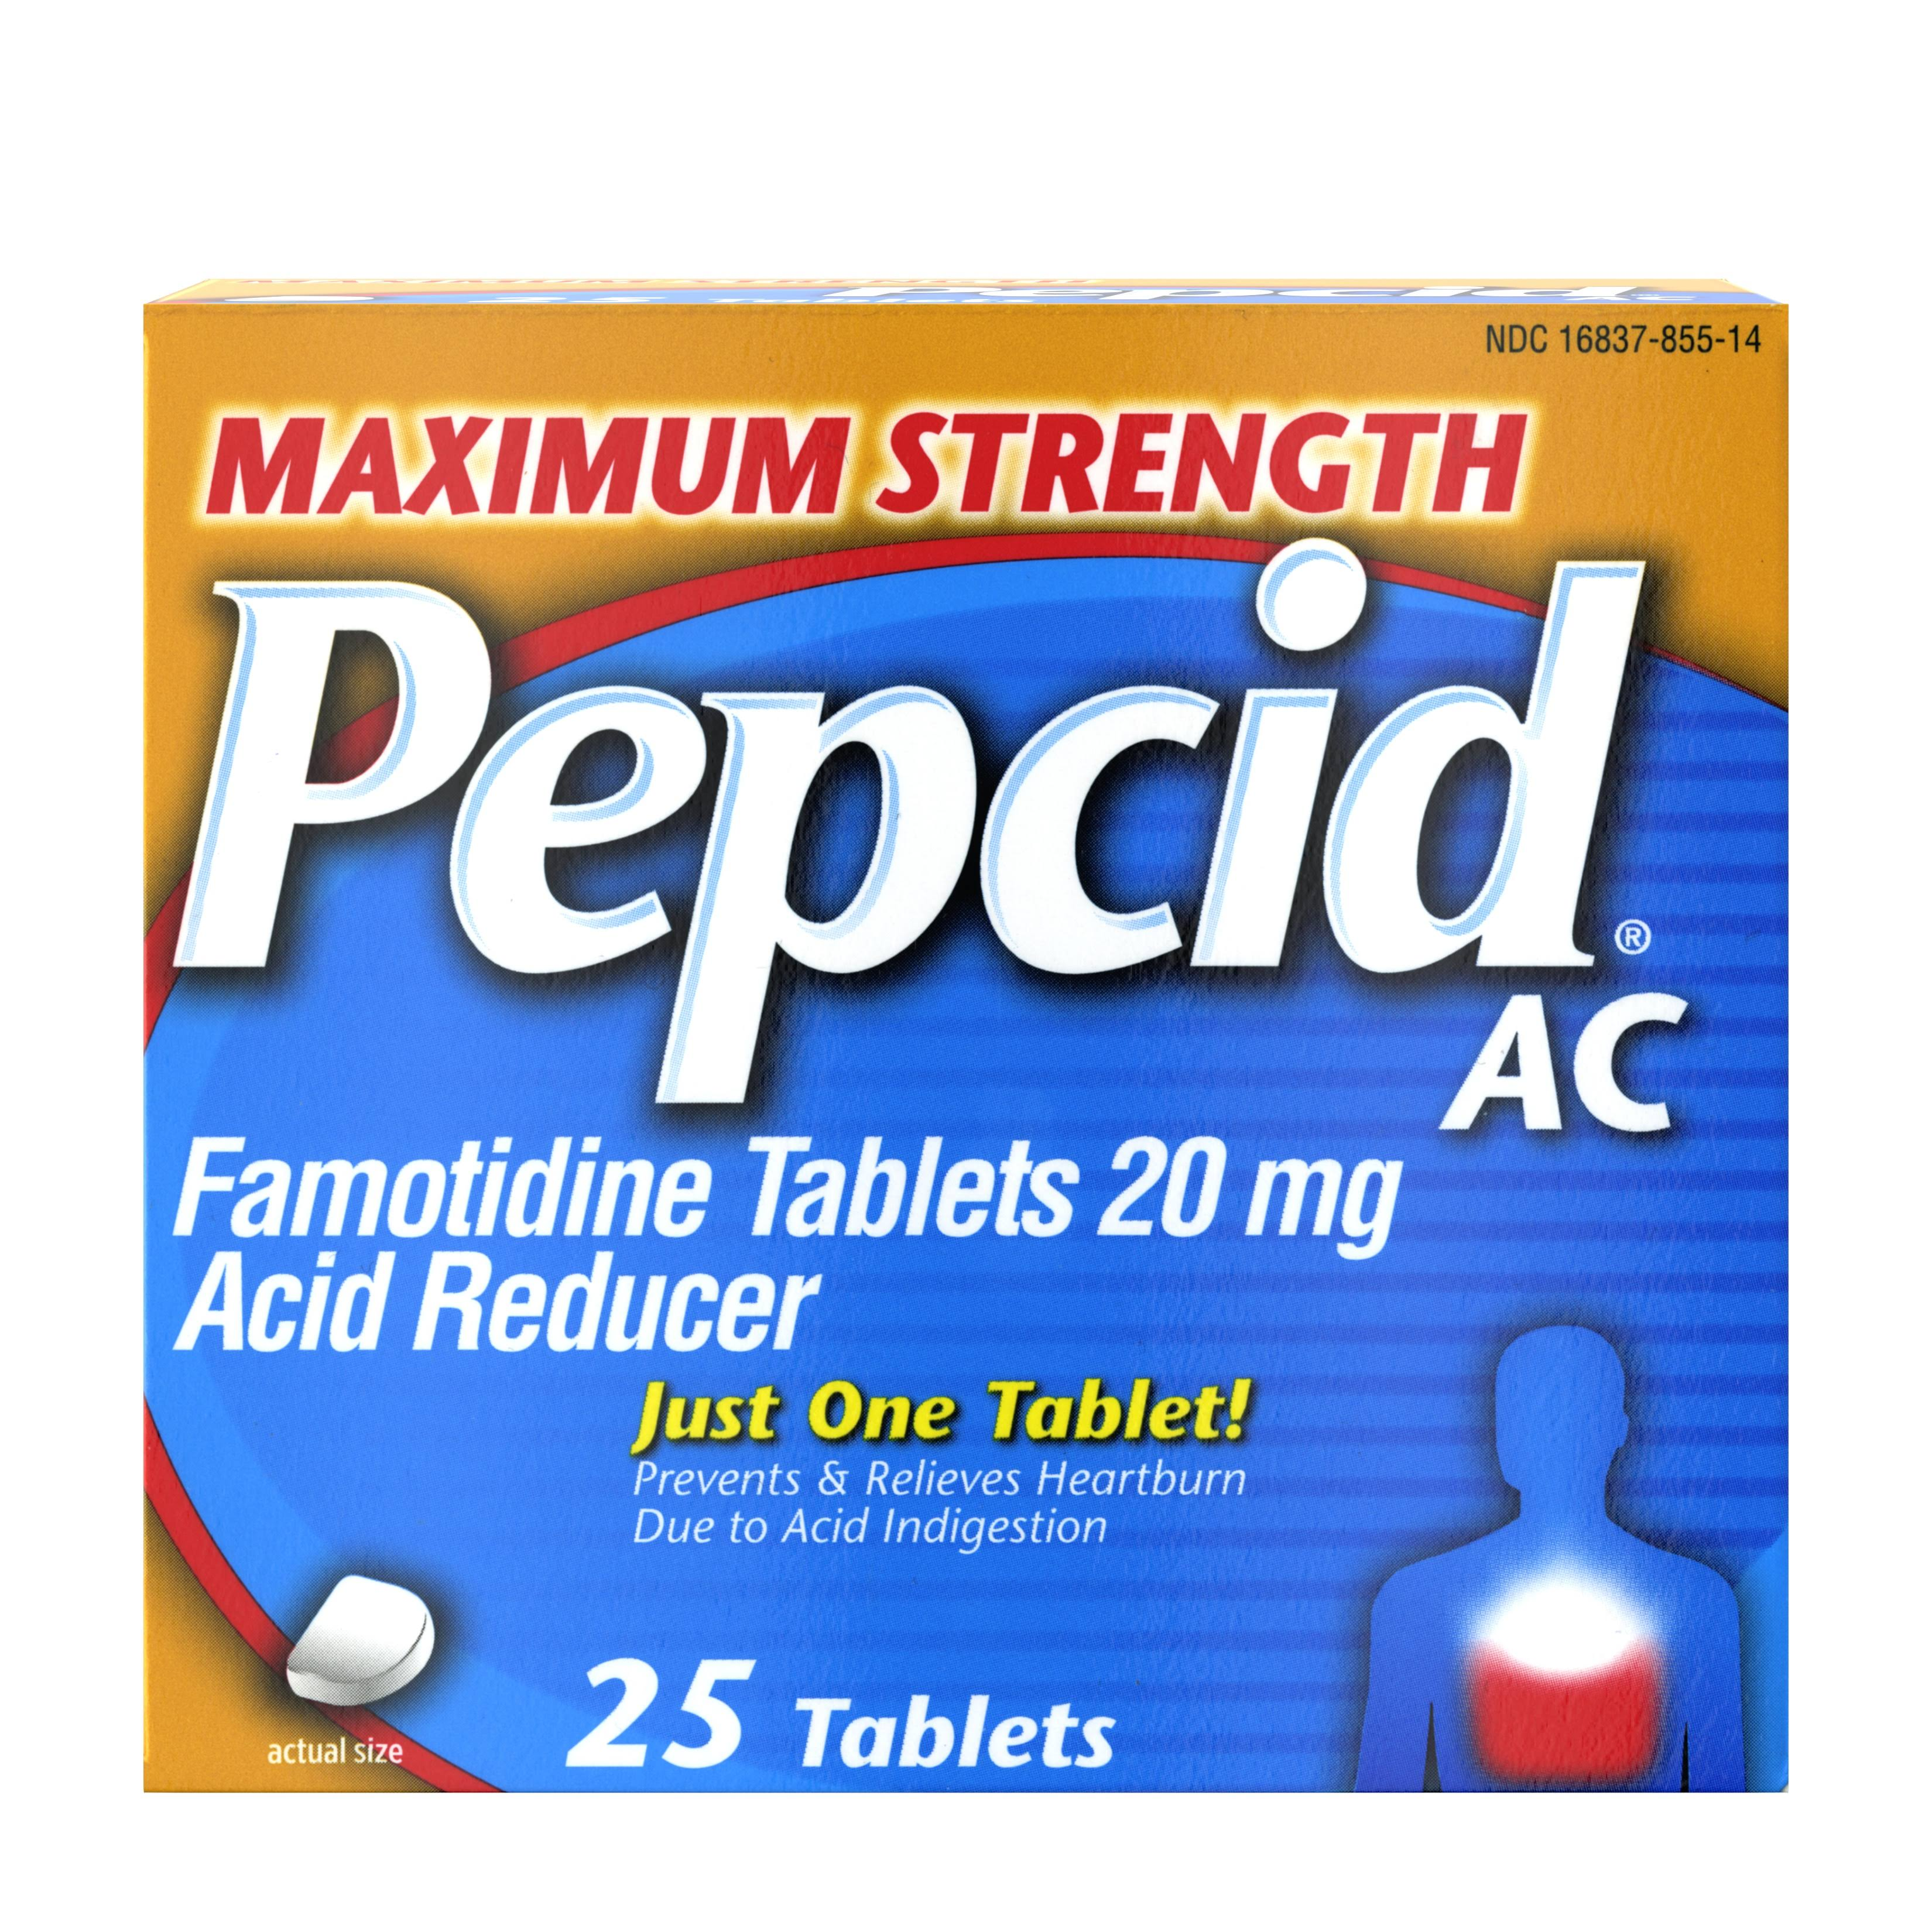 Pepcid AC Maximum Strength Famotidine Acid Reducer - 20mg, 25pk